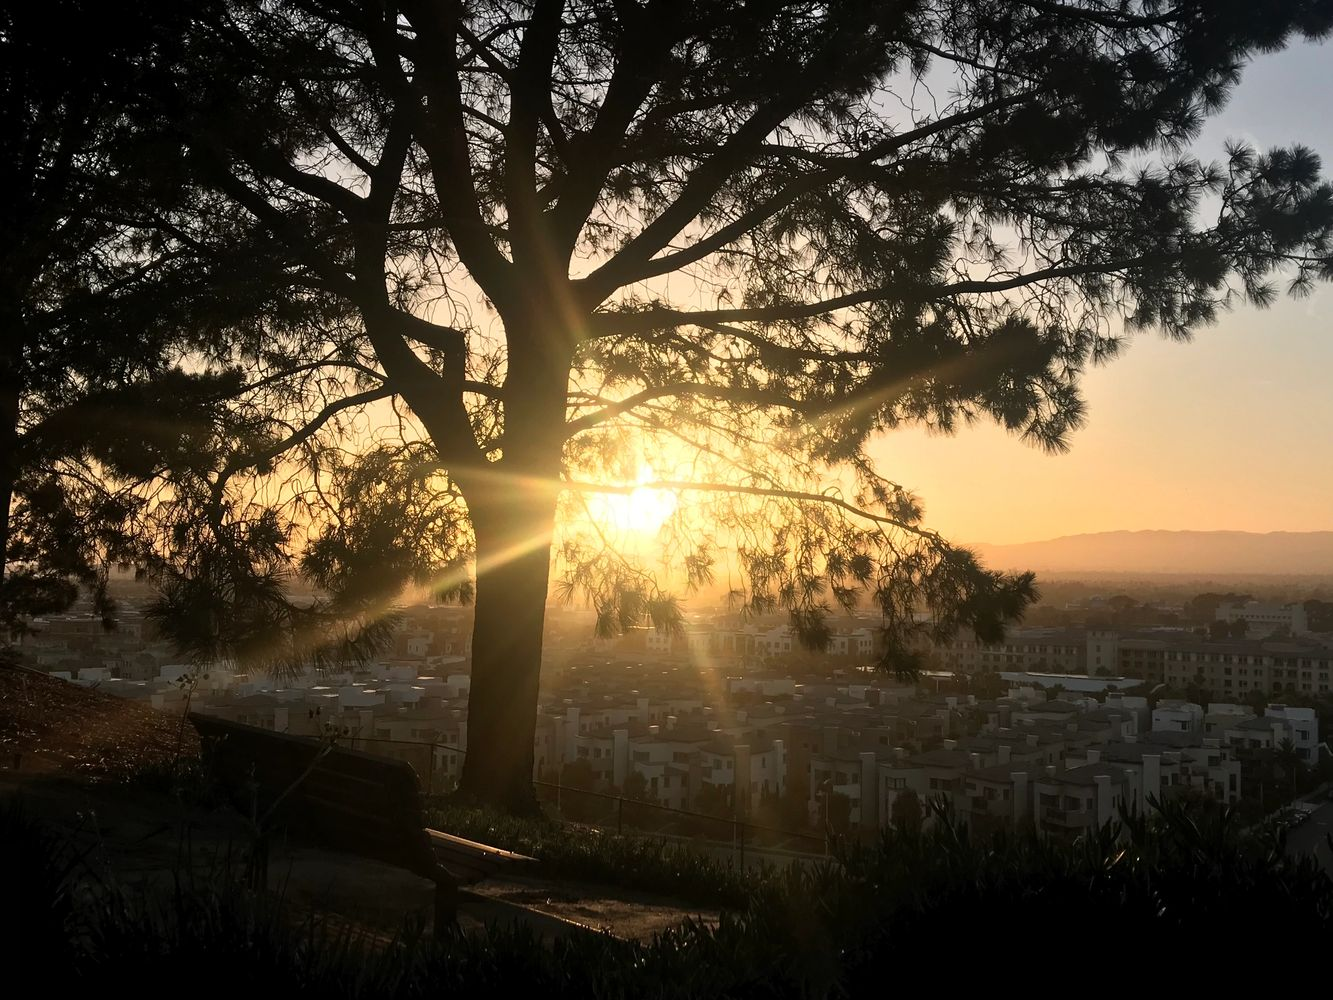 Sunset over Los Angeles, through tree branches.  Love Laughter Loss Home Page. Grief